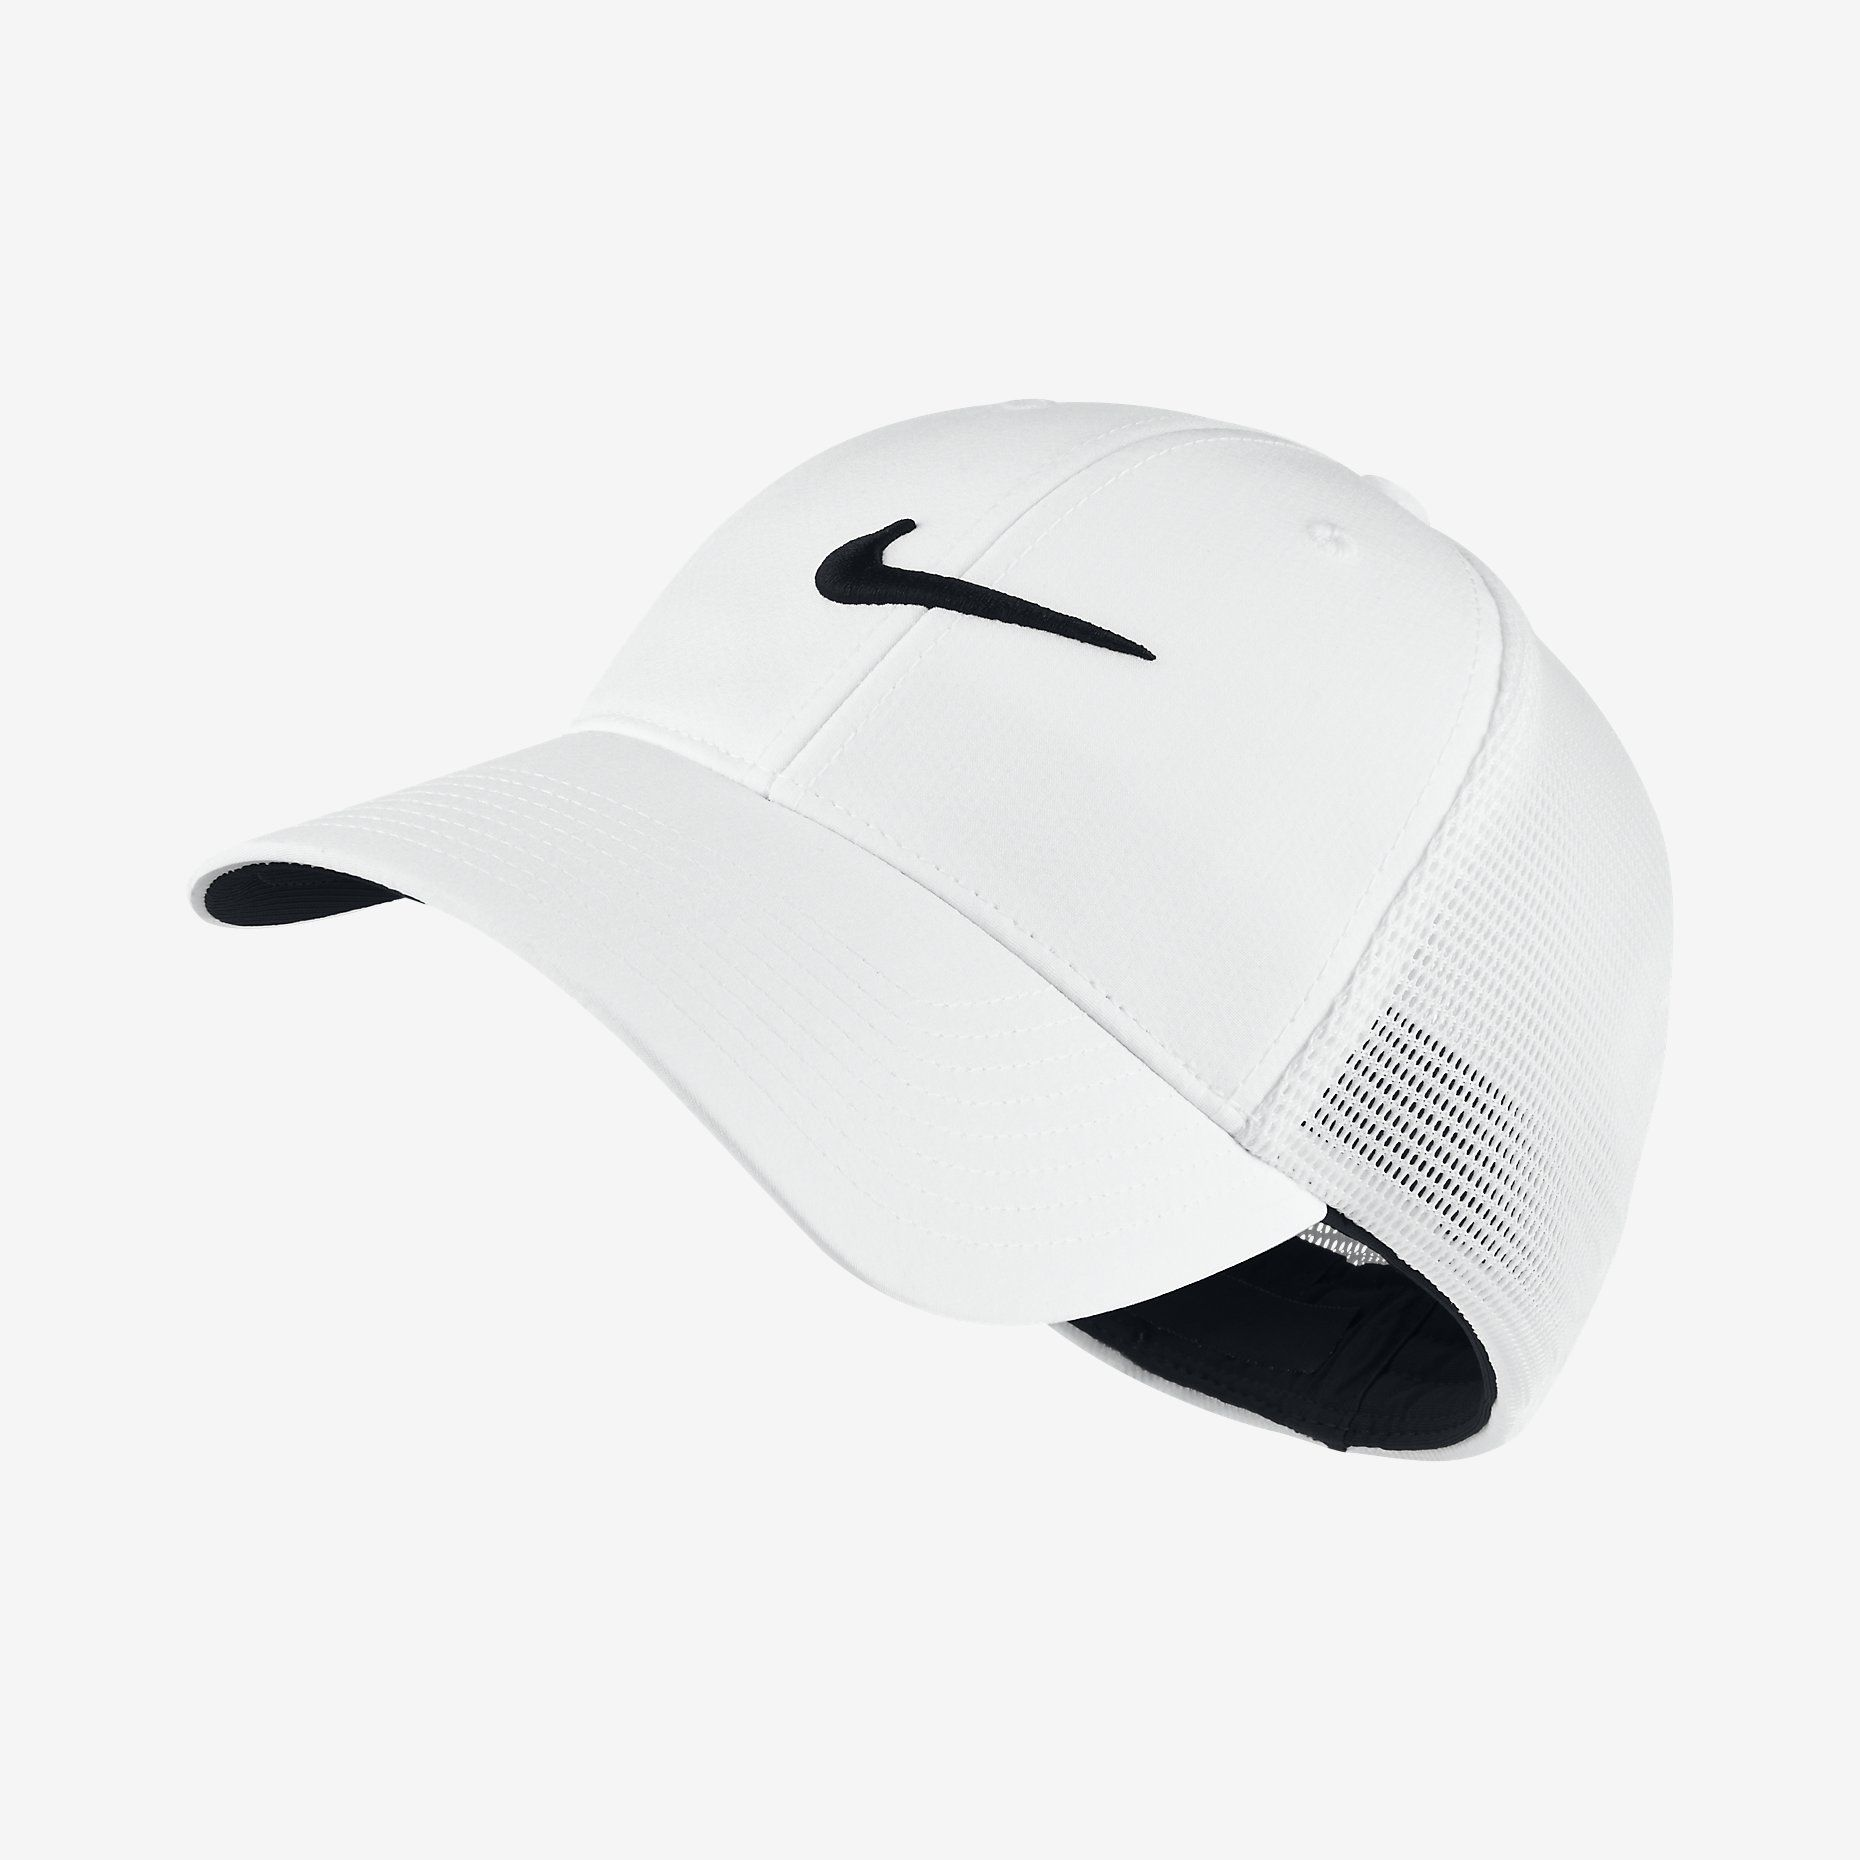 d285b58facd Nike Classic 99 Golf Hat Cap Turf Orange Sz L XL  PLEASE READ ENTIRE  DESCRIPTION AND VIEW ALL PICTURES BEFORE PLACING YOUR BID. THANK…